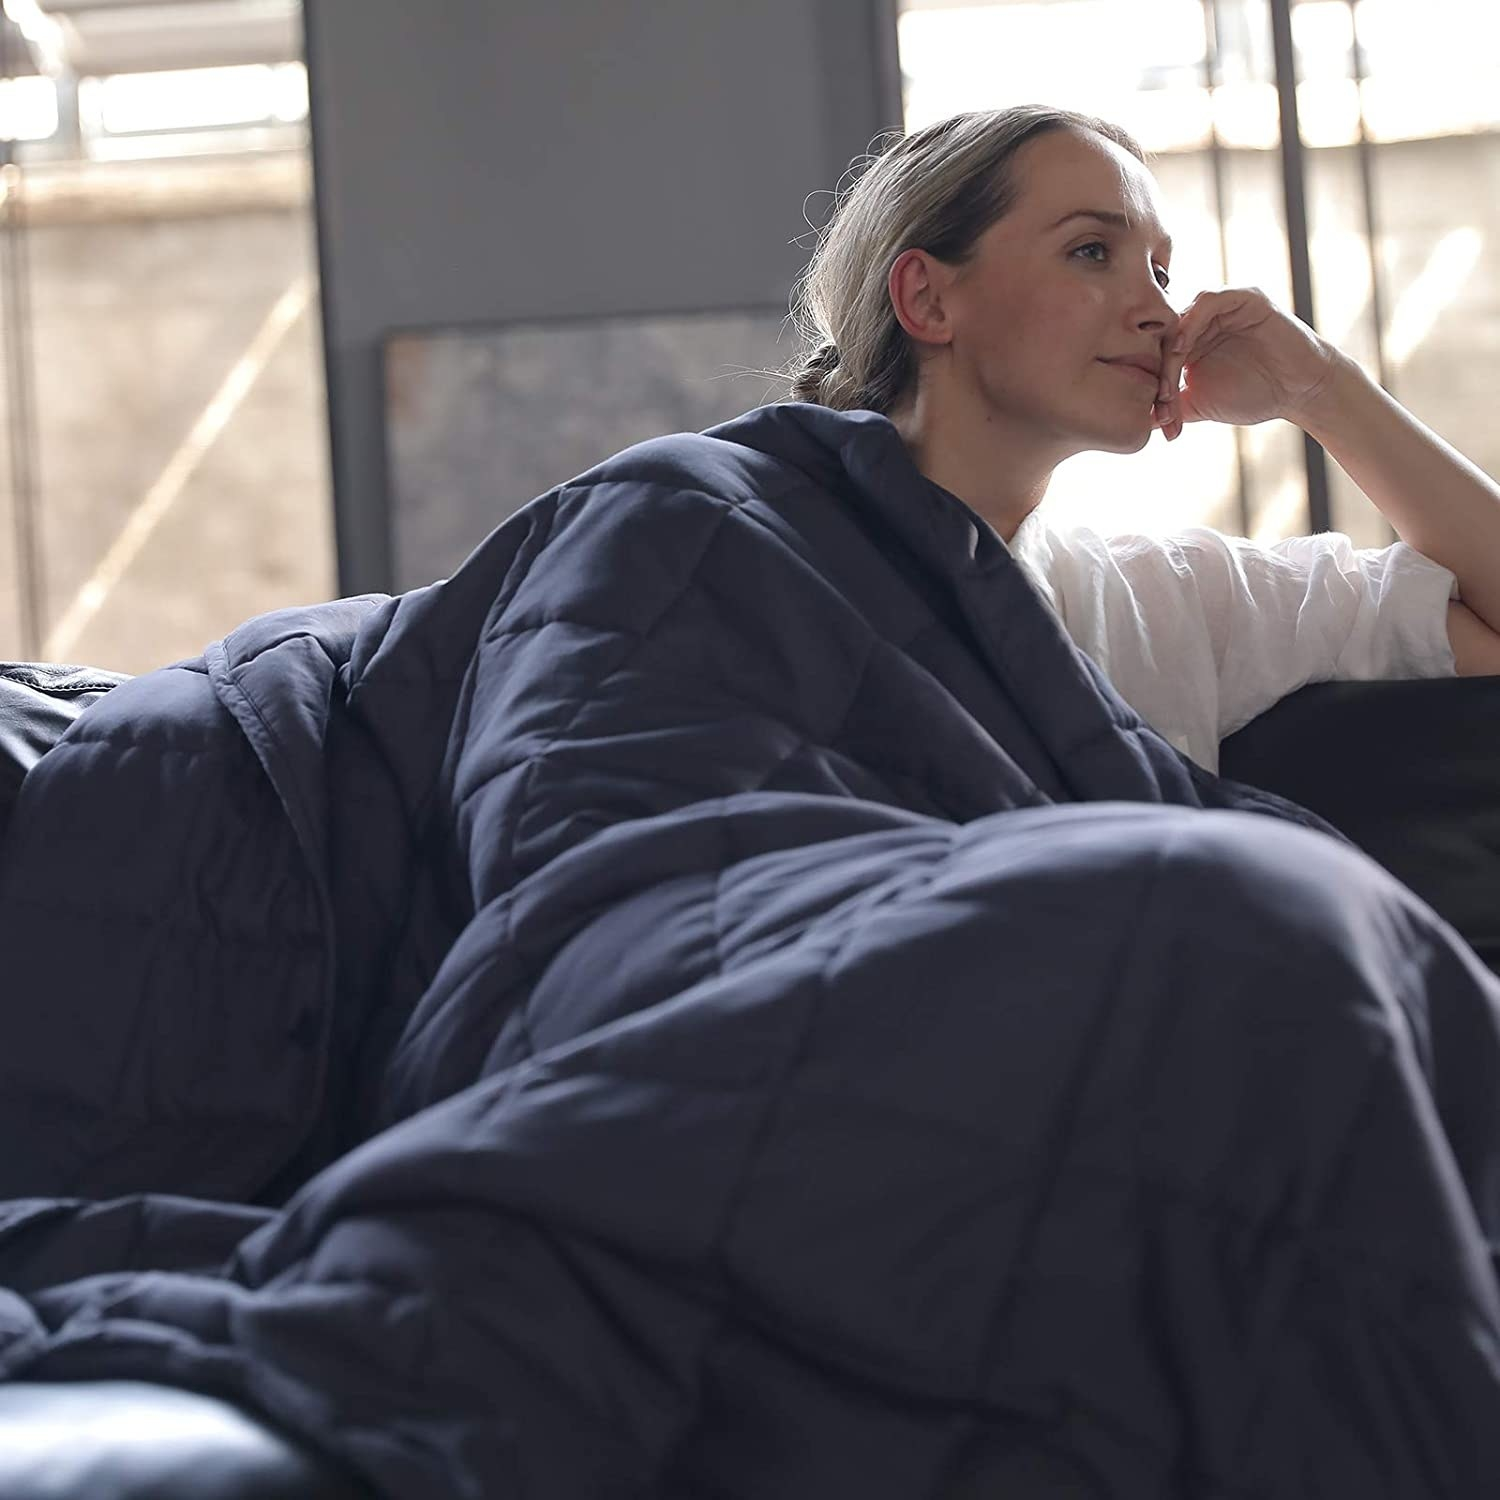 A person lying on a couch with a weighted blanket over them